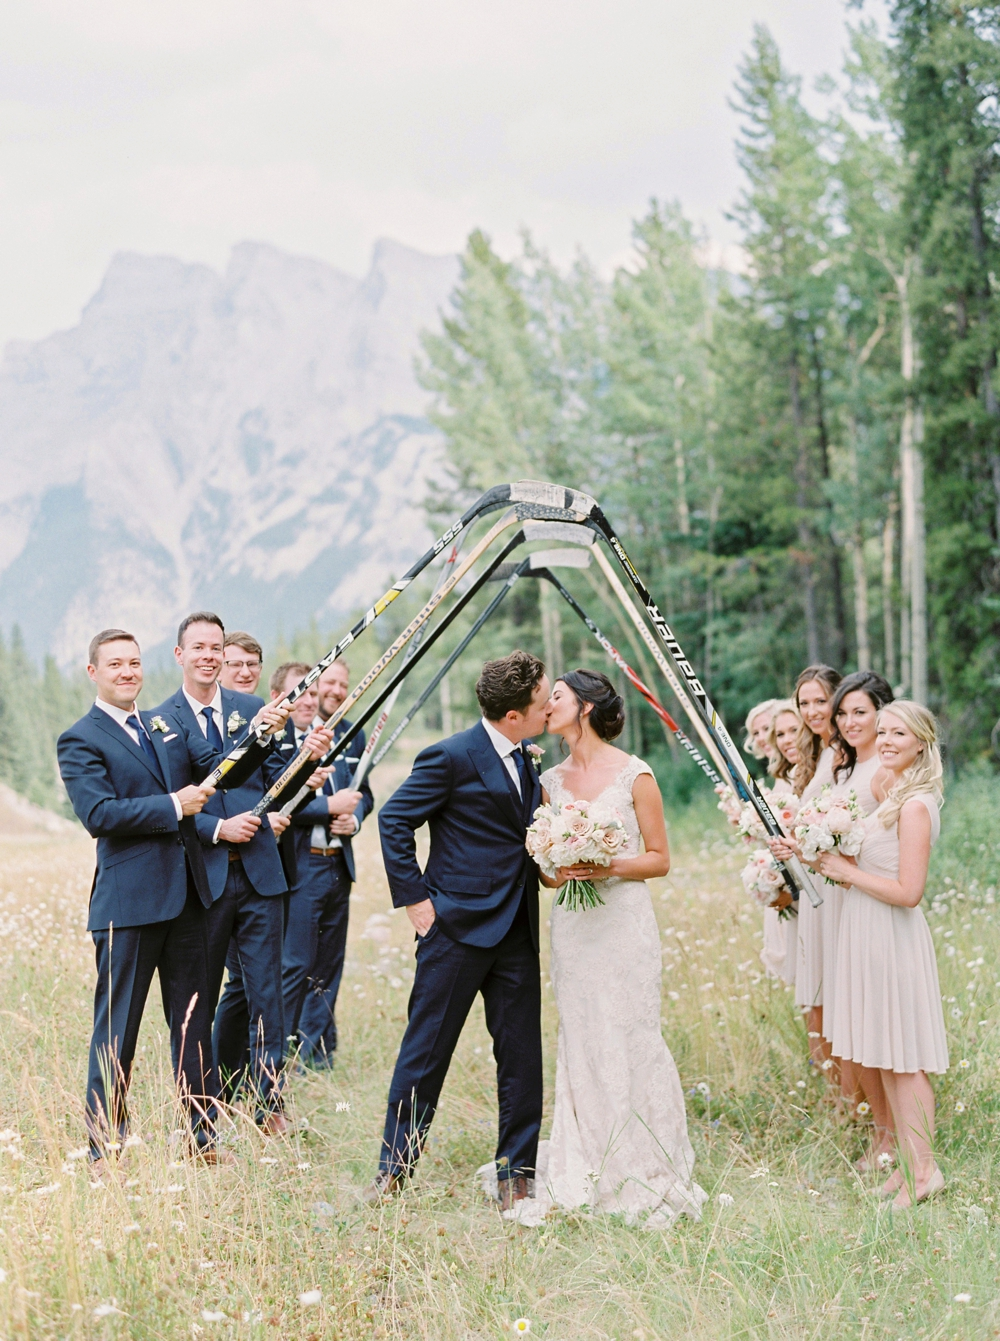 Canadian hockey wedding | wedding bridal party photograph with hockey sticks | Banff springs wedding photographers | fairmont banff rocky mountain wedding | Justine Milton fine art film Photography